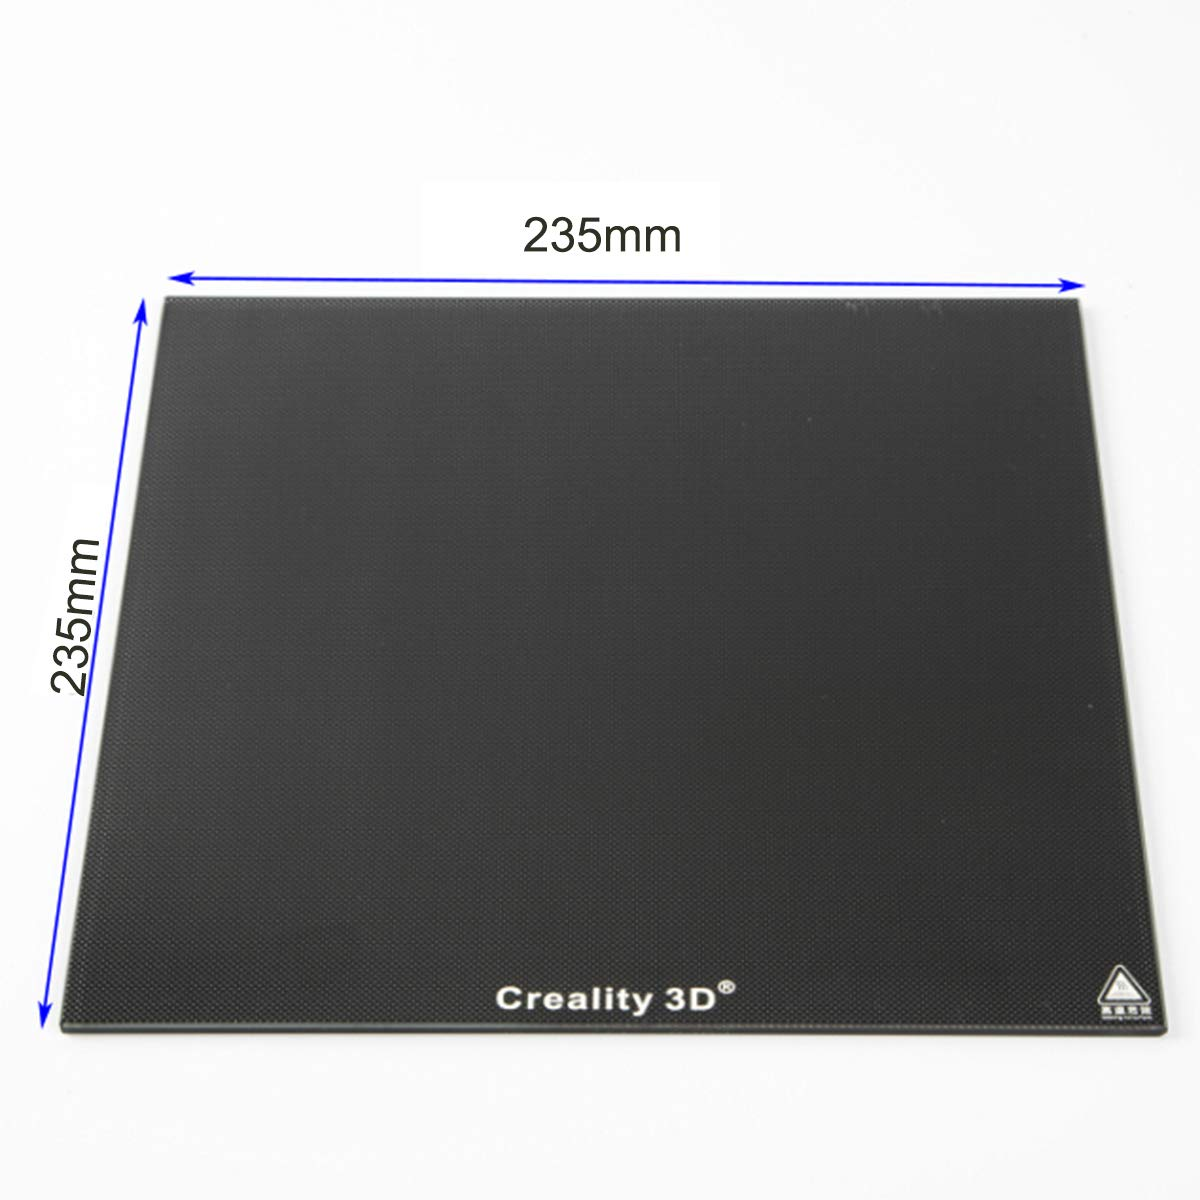 235-235mm New Creality 3D Ultrabase 3D Printer Platform Heated Bed Build Surface Glass Plate for CR-10 CR-10S … Shenzhen Creality 3D Technology Co. Ltd